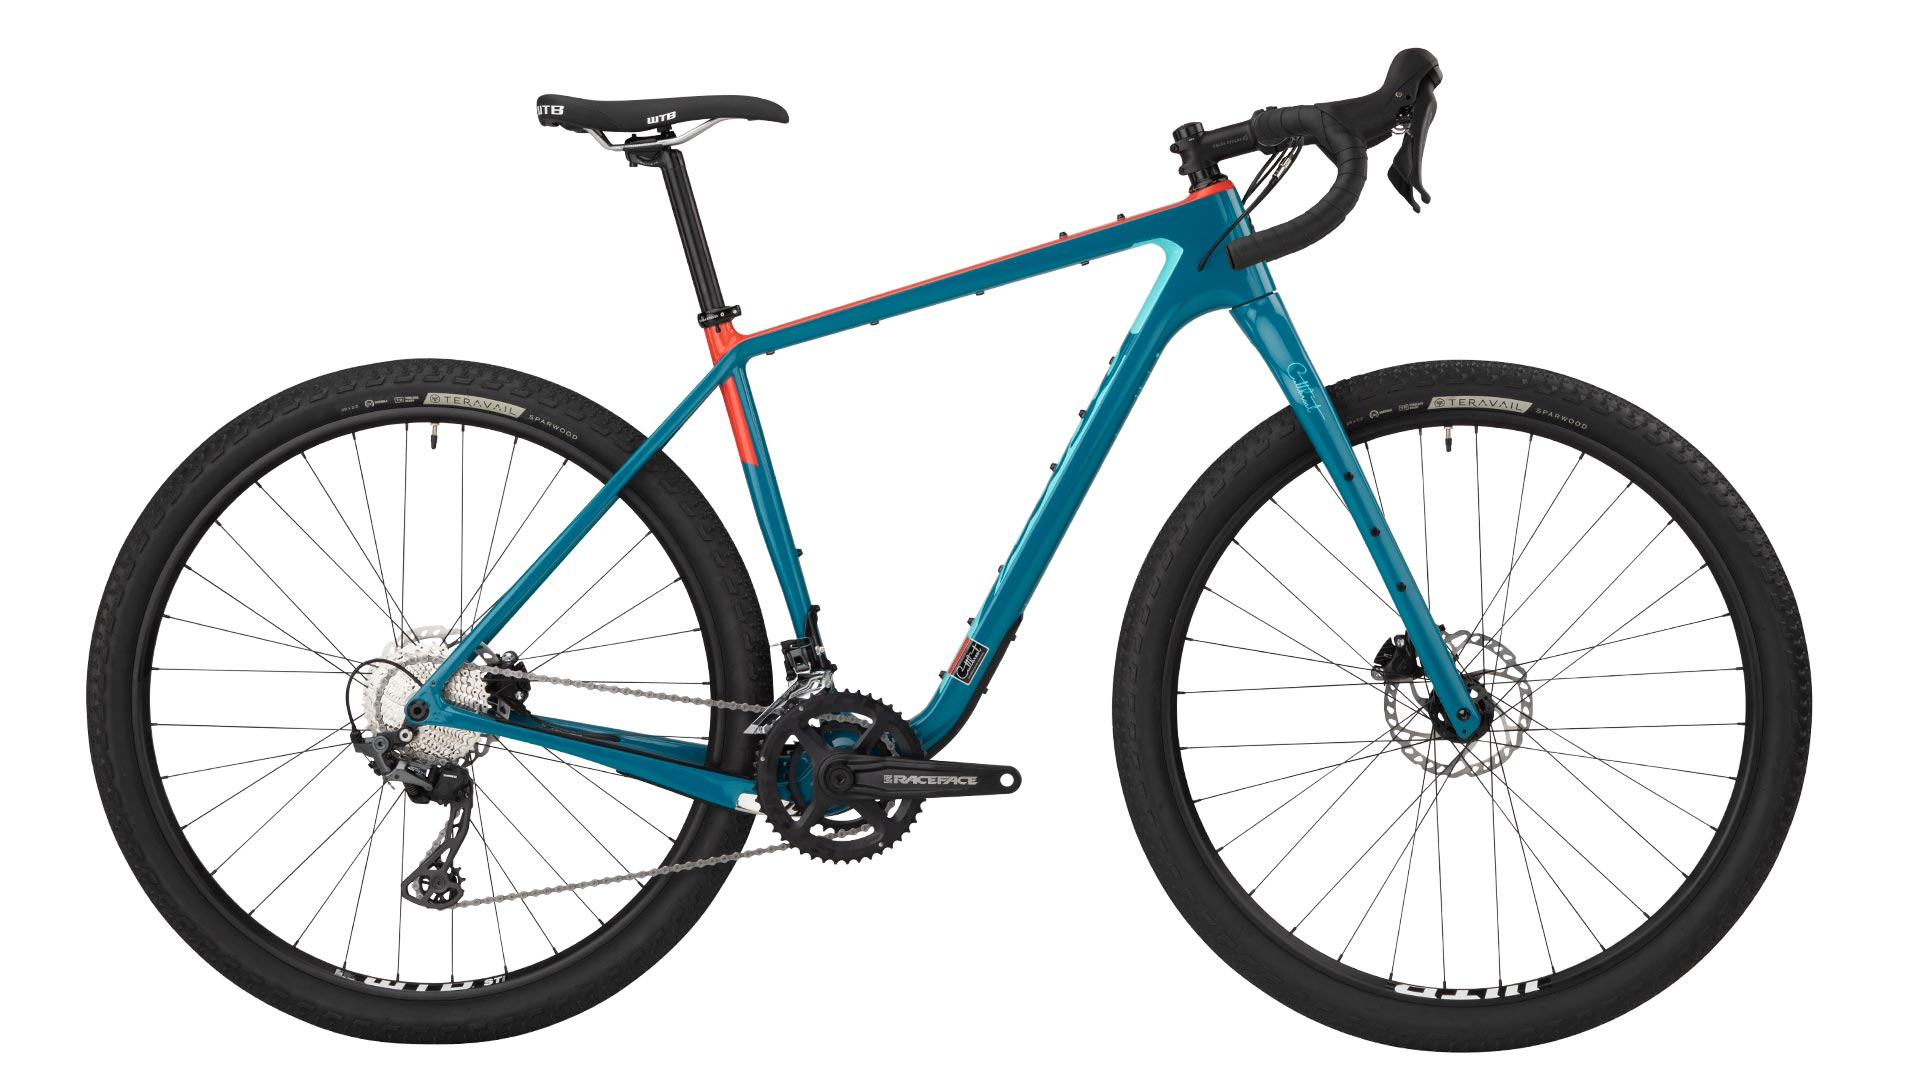 Salsa Cutthroat 2020 GRX 600 in Teal